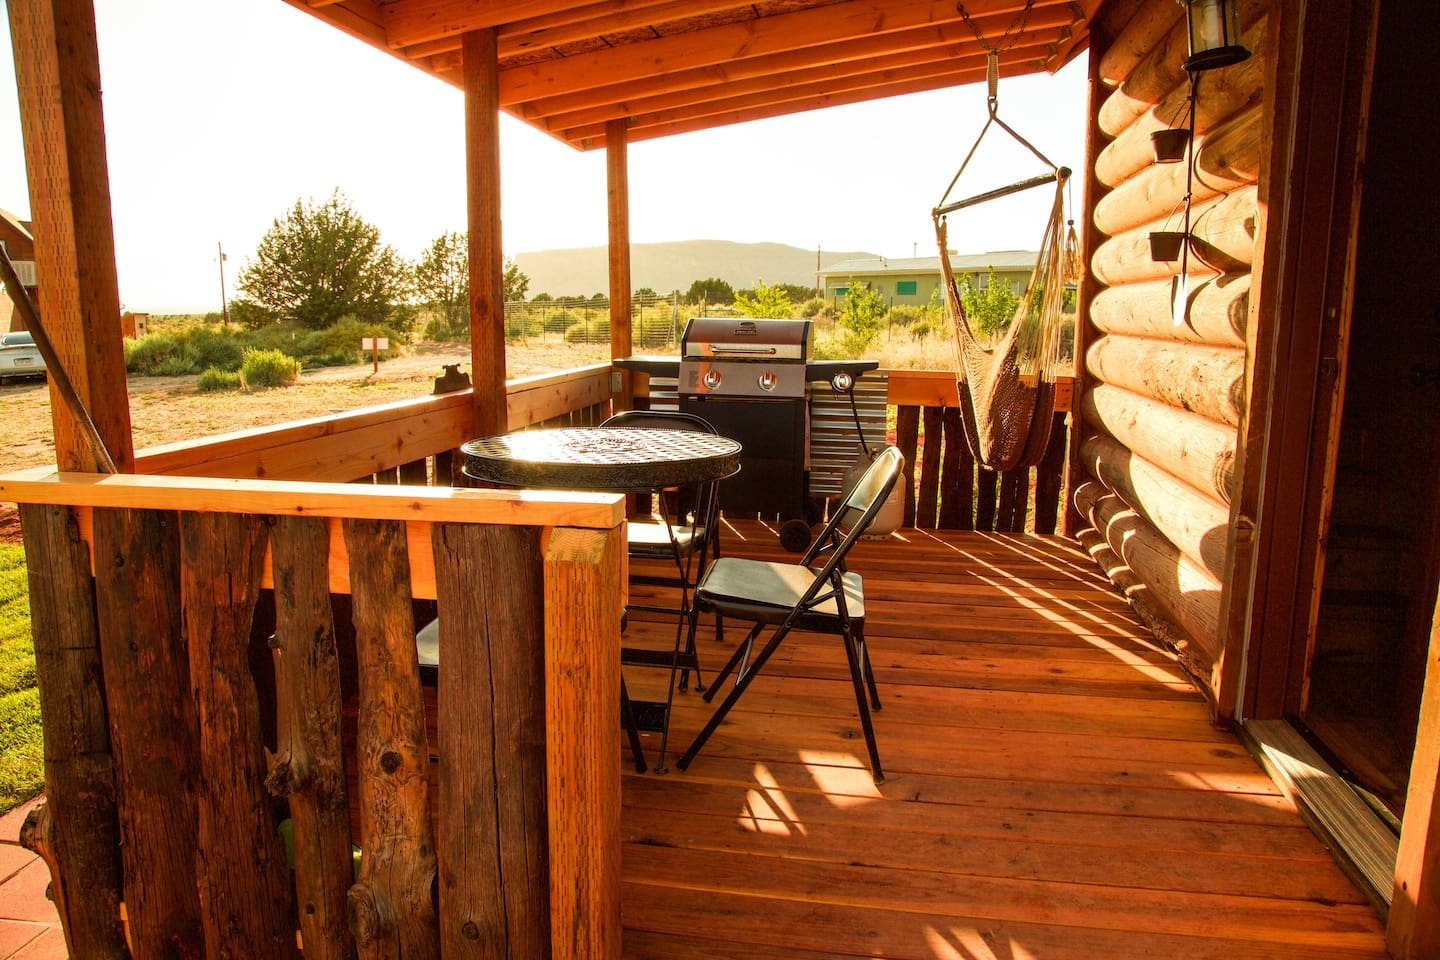 Great deck with table & chairs, hammock swing and propane grill with side burner.